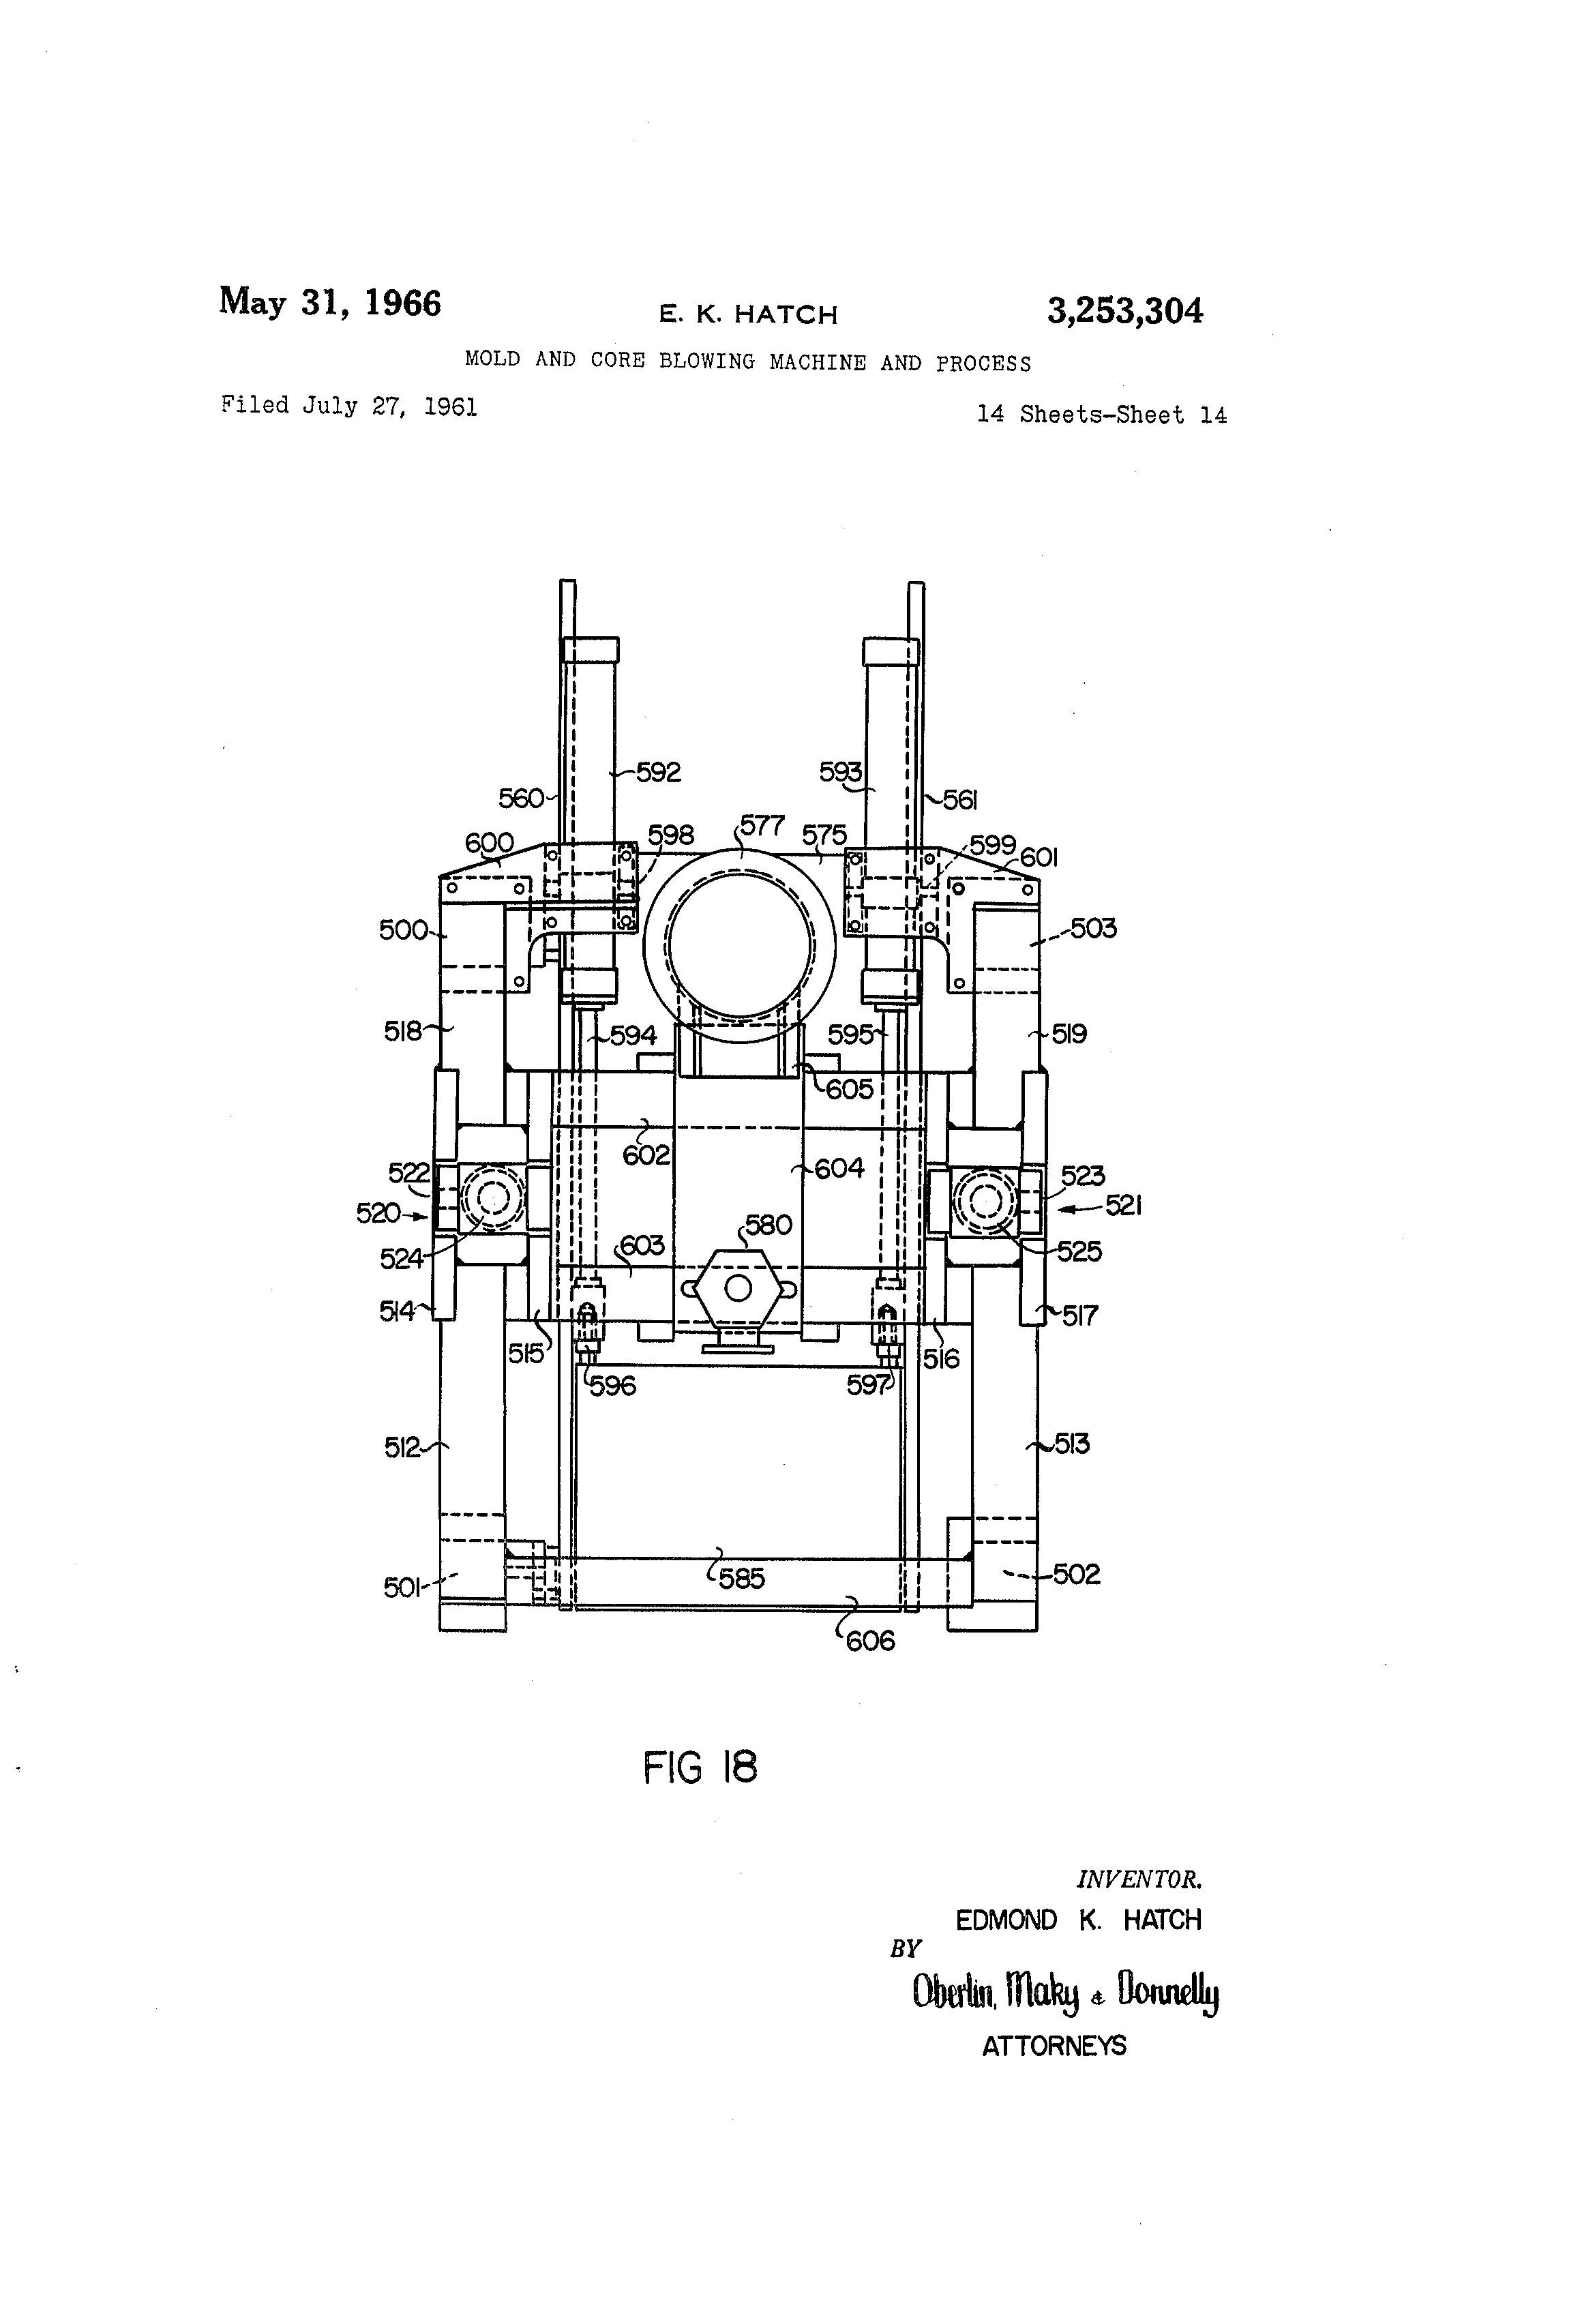 US3253304 13 patent us3253304 mold and core blowing machine and process  at love-stories.co